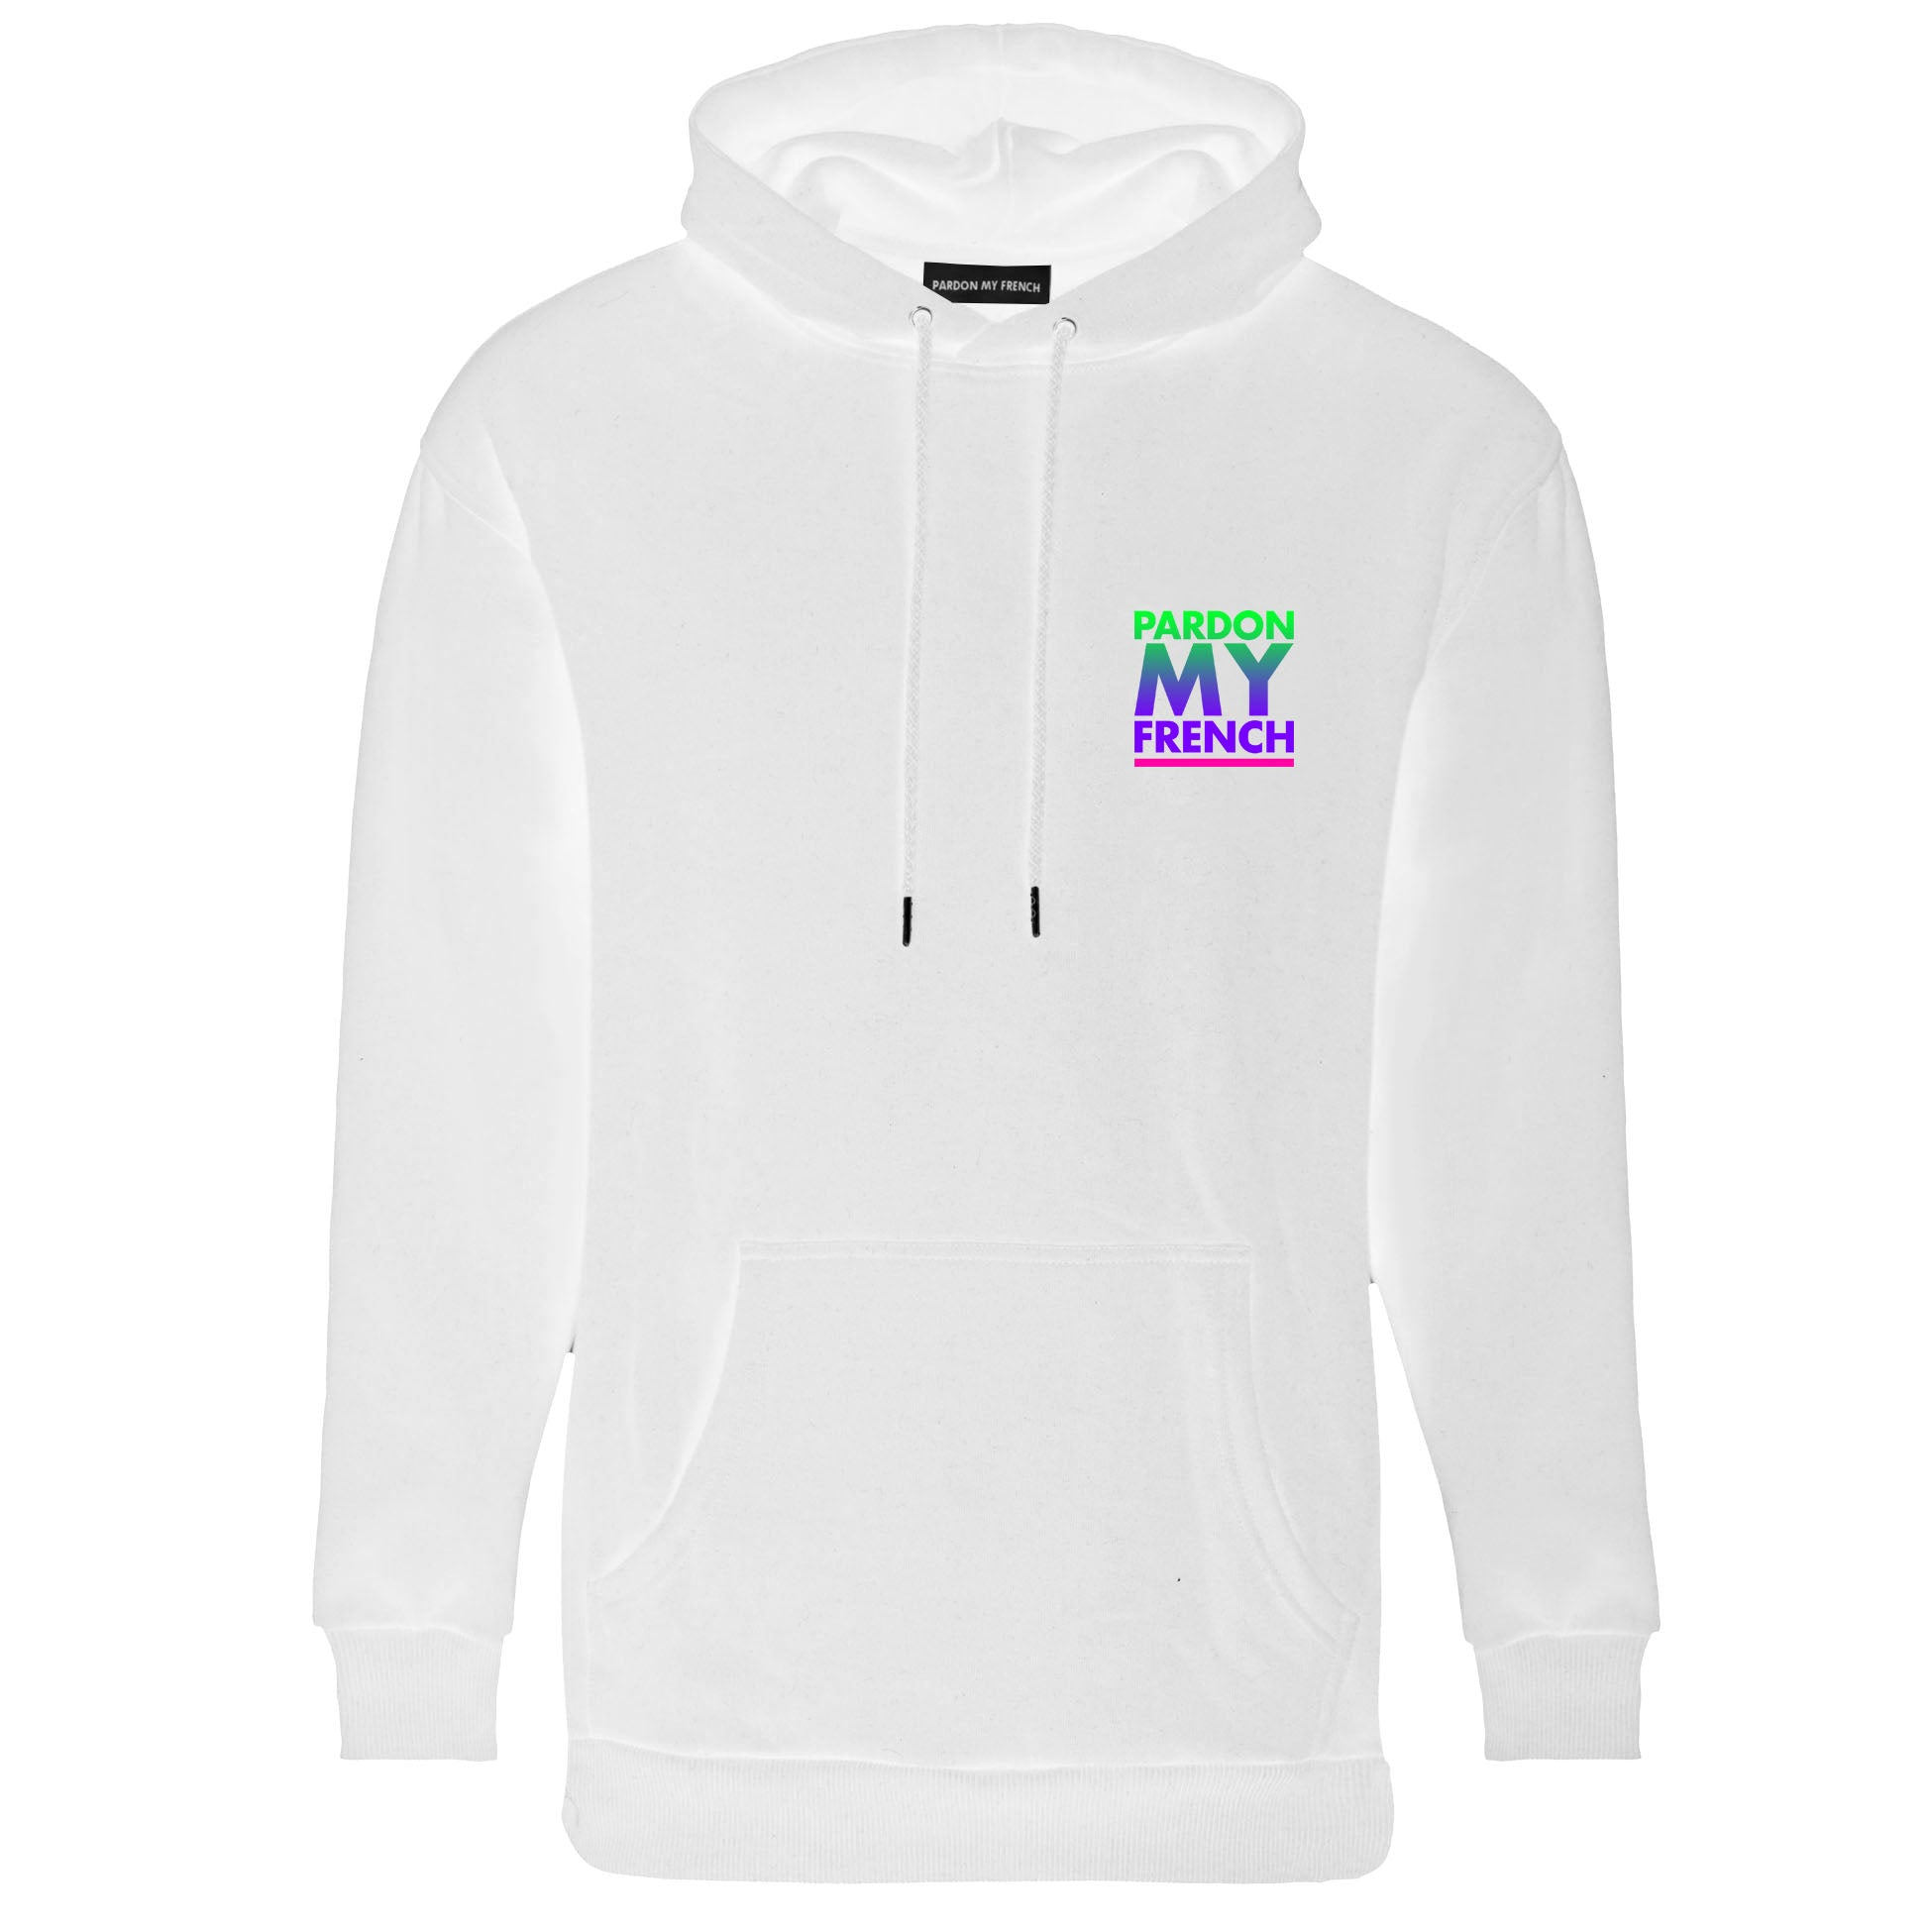 PARDON MY FRENCH SUNSET EDITION WHITE HOODIE